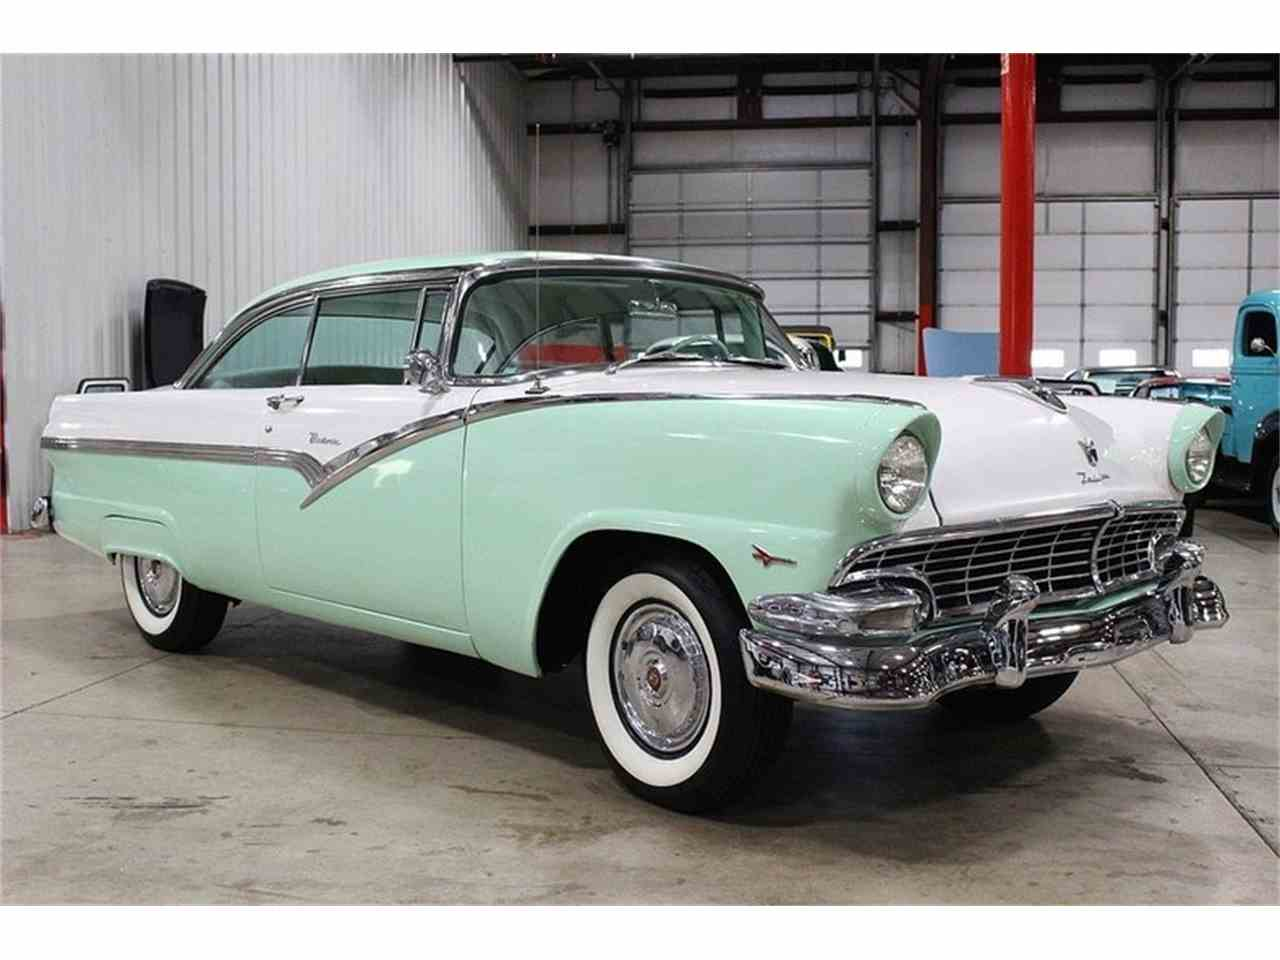 wiring diagram for 1960 ford thunderbird wiring diagram for 1960 ford falcon wiring diagram 1959 Ford Sunliner 1958 Ford Skyliner